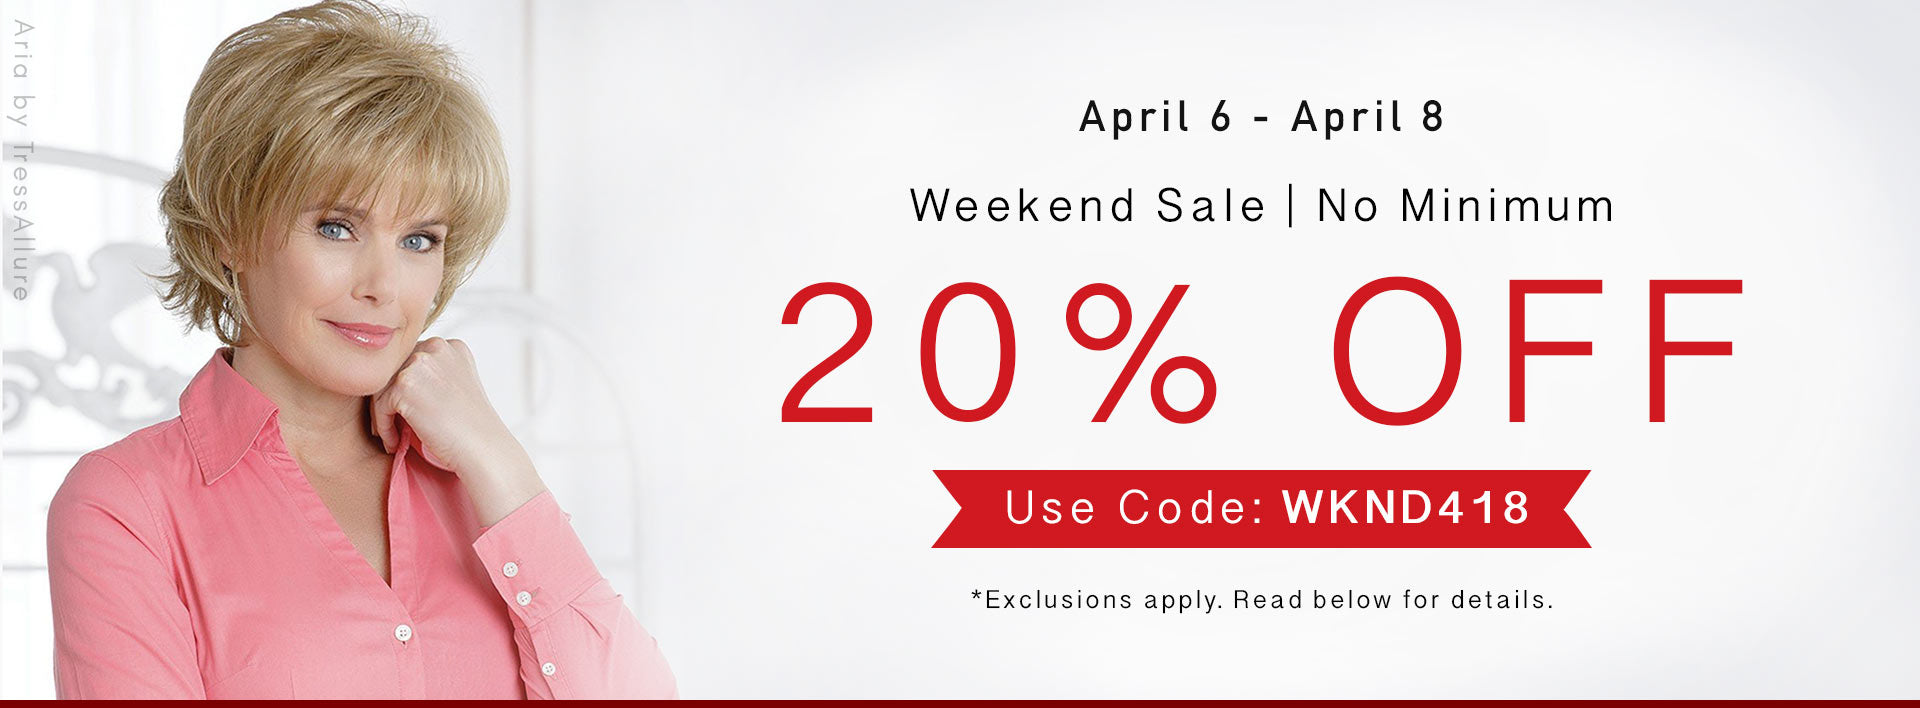 Weekend Sale at BeautyTrends